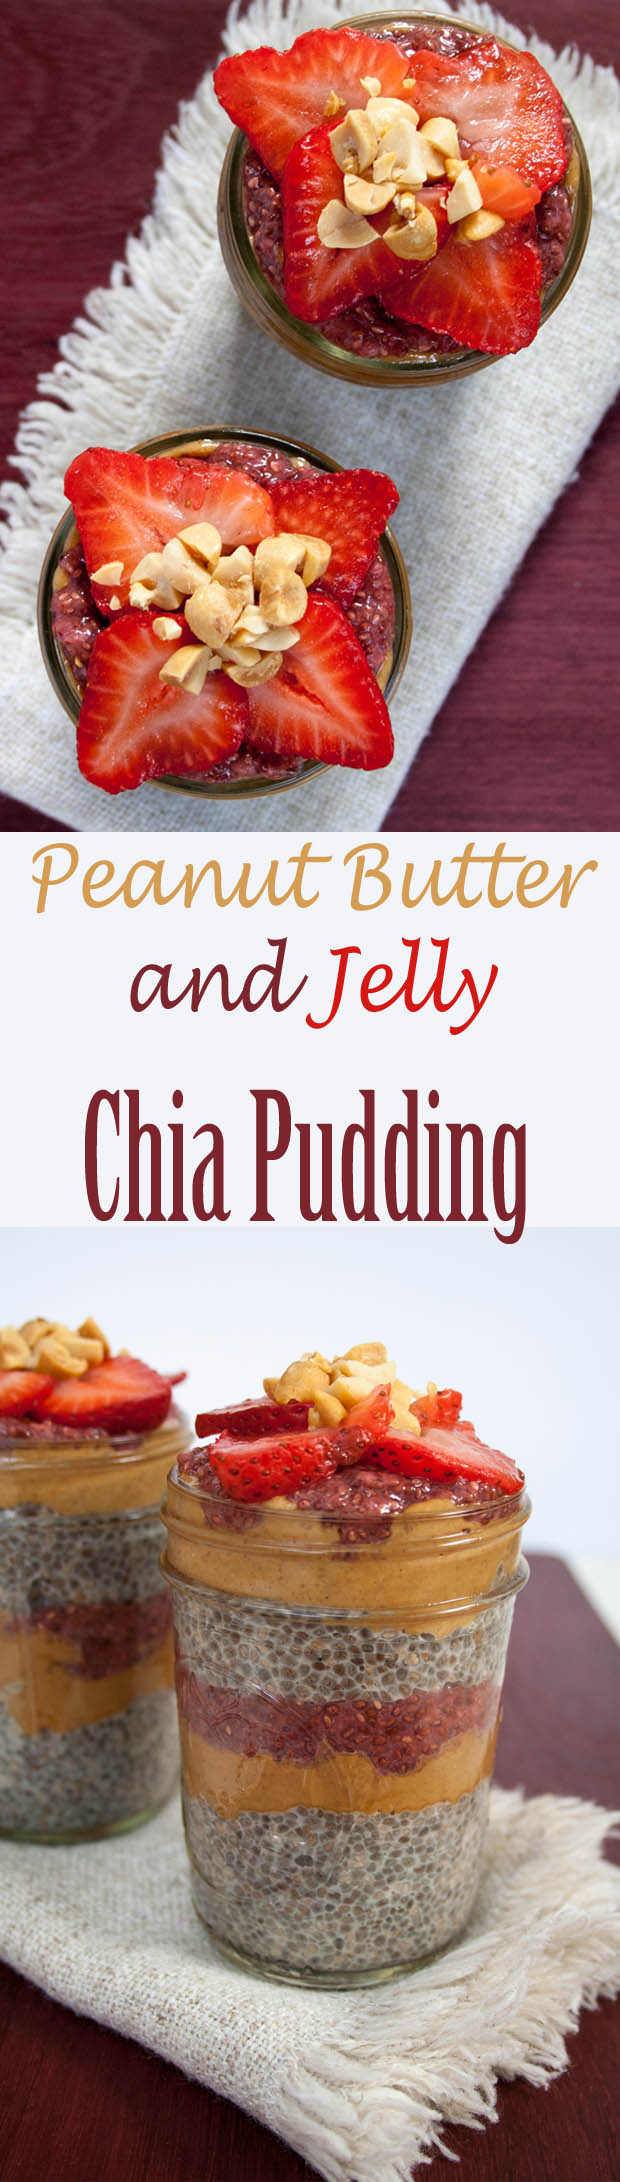 Peanut Butter and Jelly Chia Pudding collage photo with text.